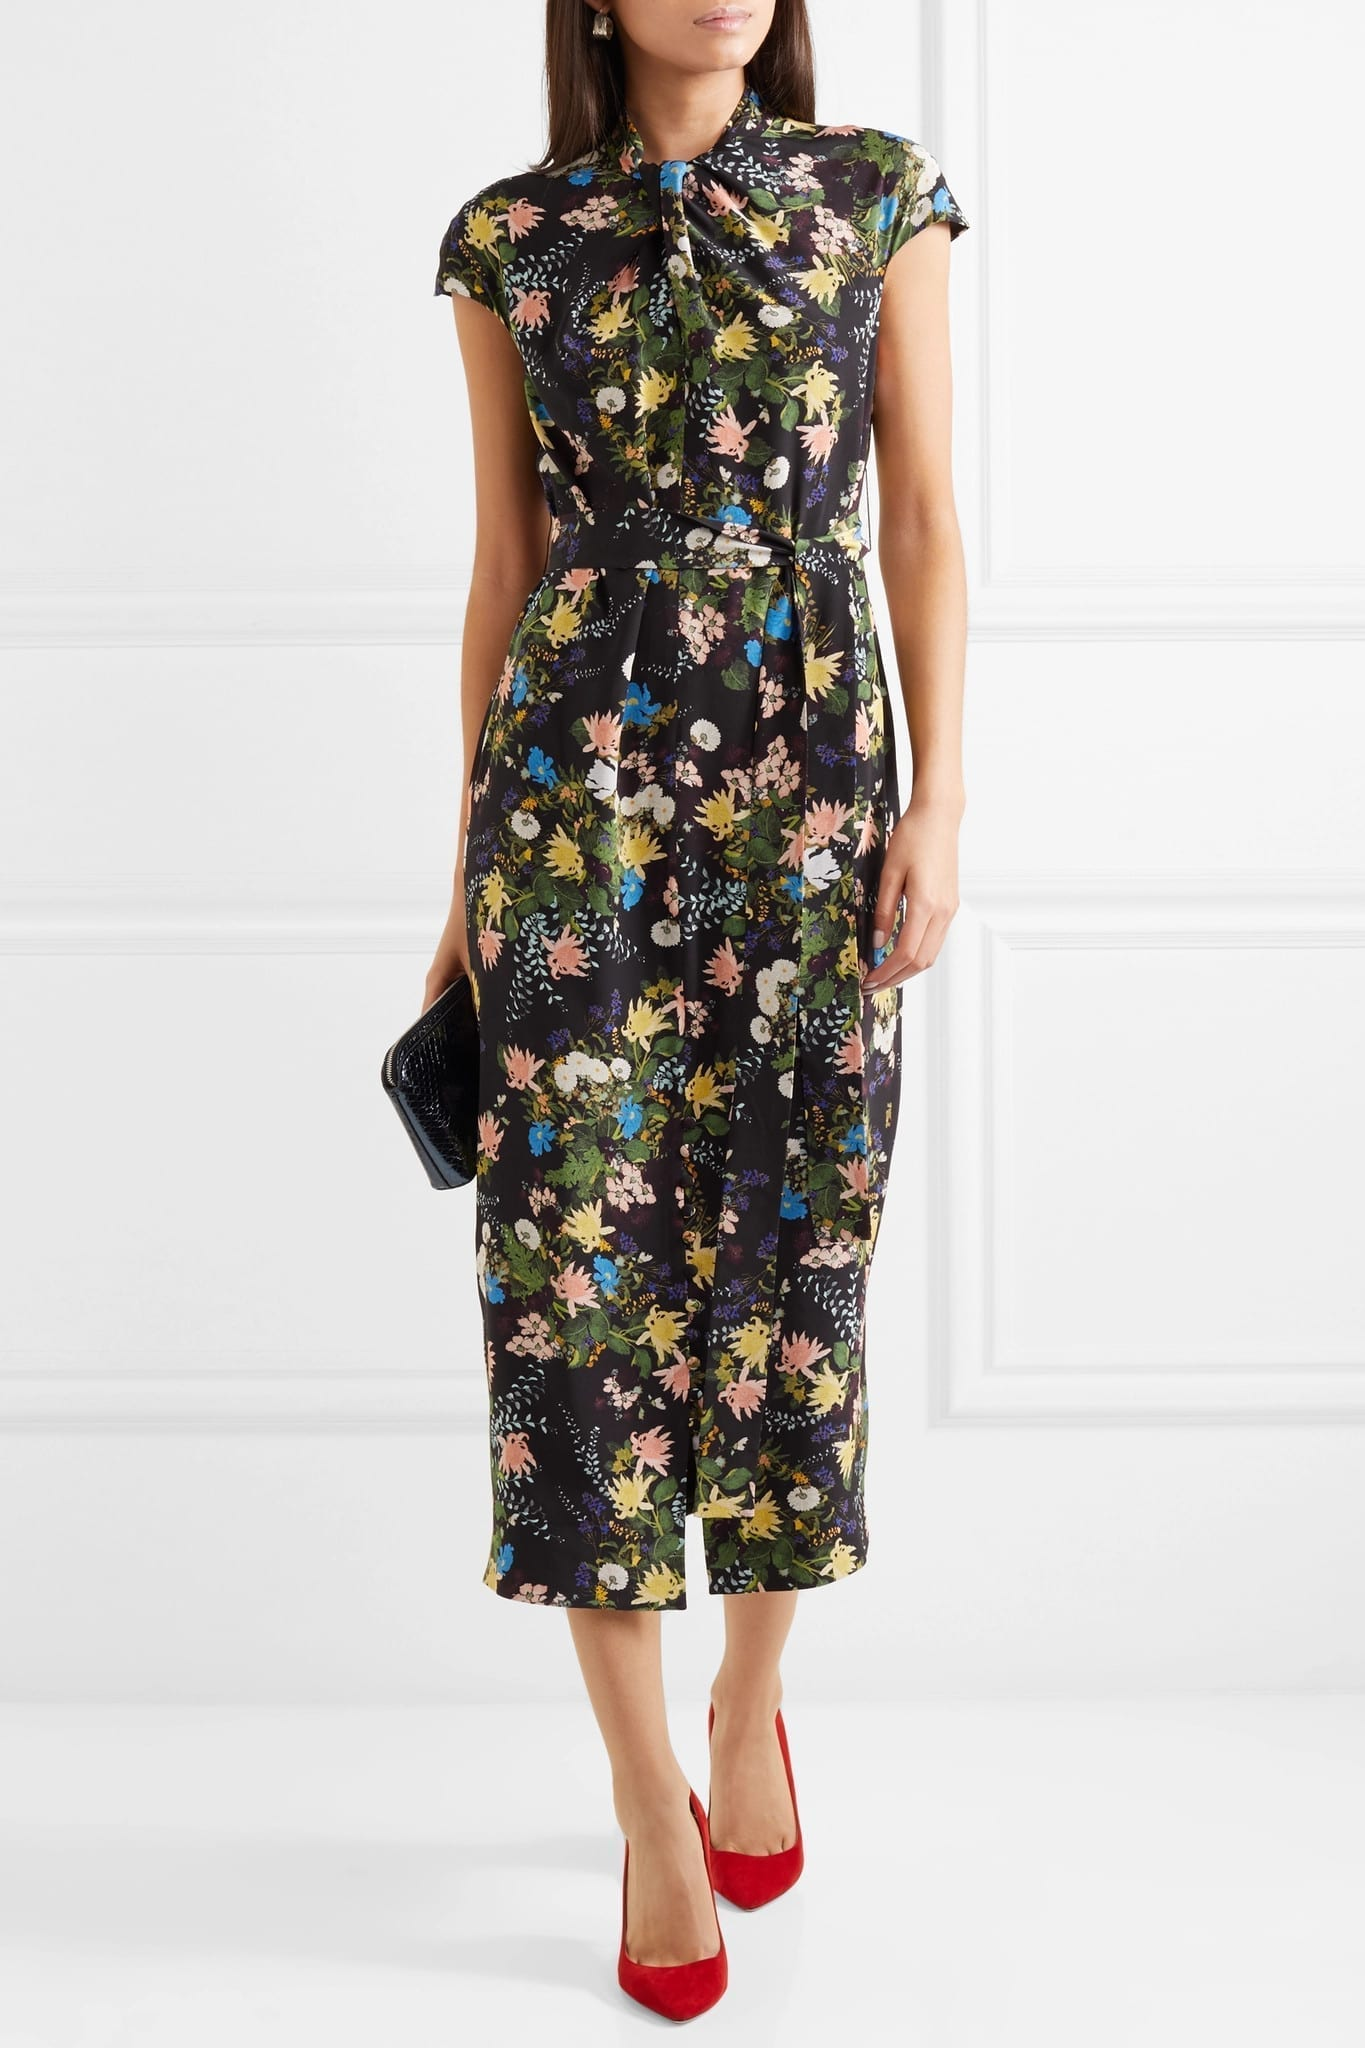 ERDEM Finn Floral-Print Silk-Crepe Midi Black Dress